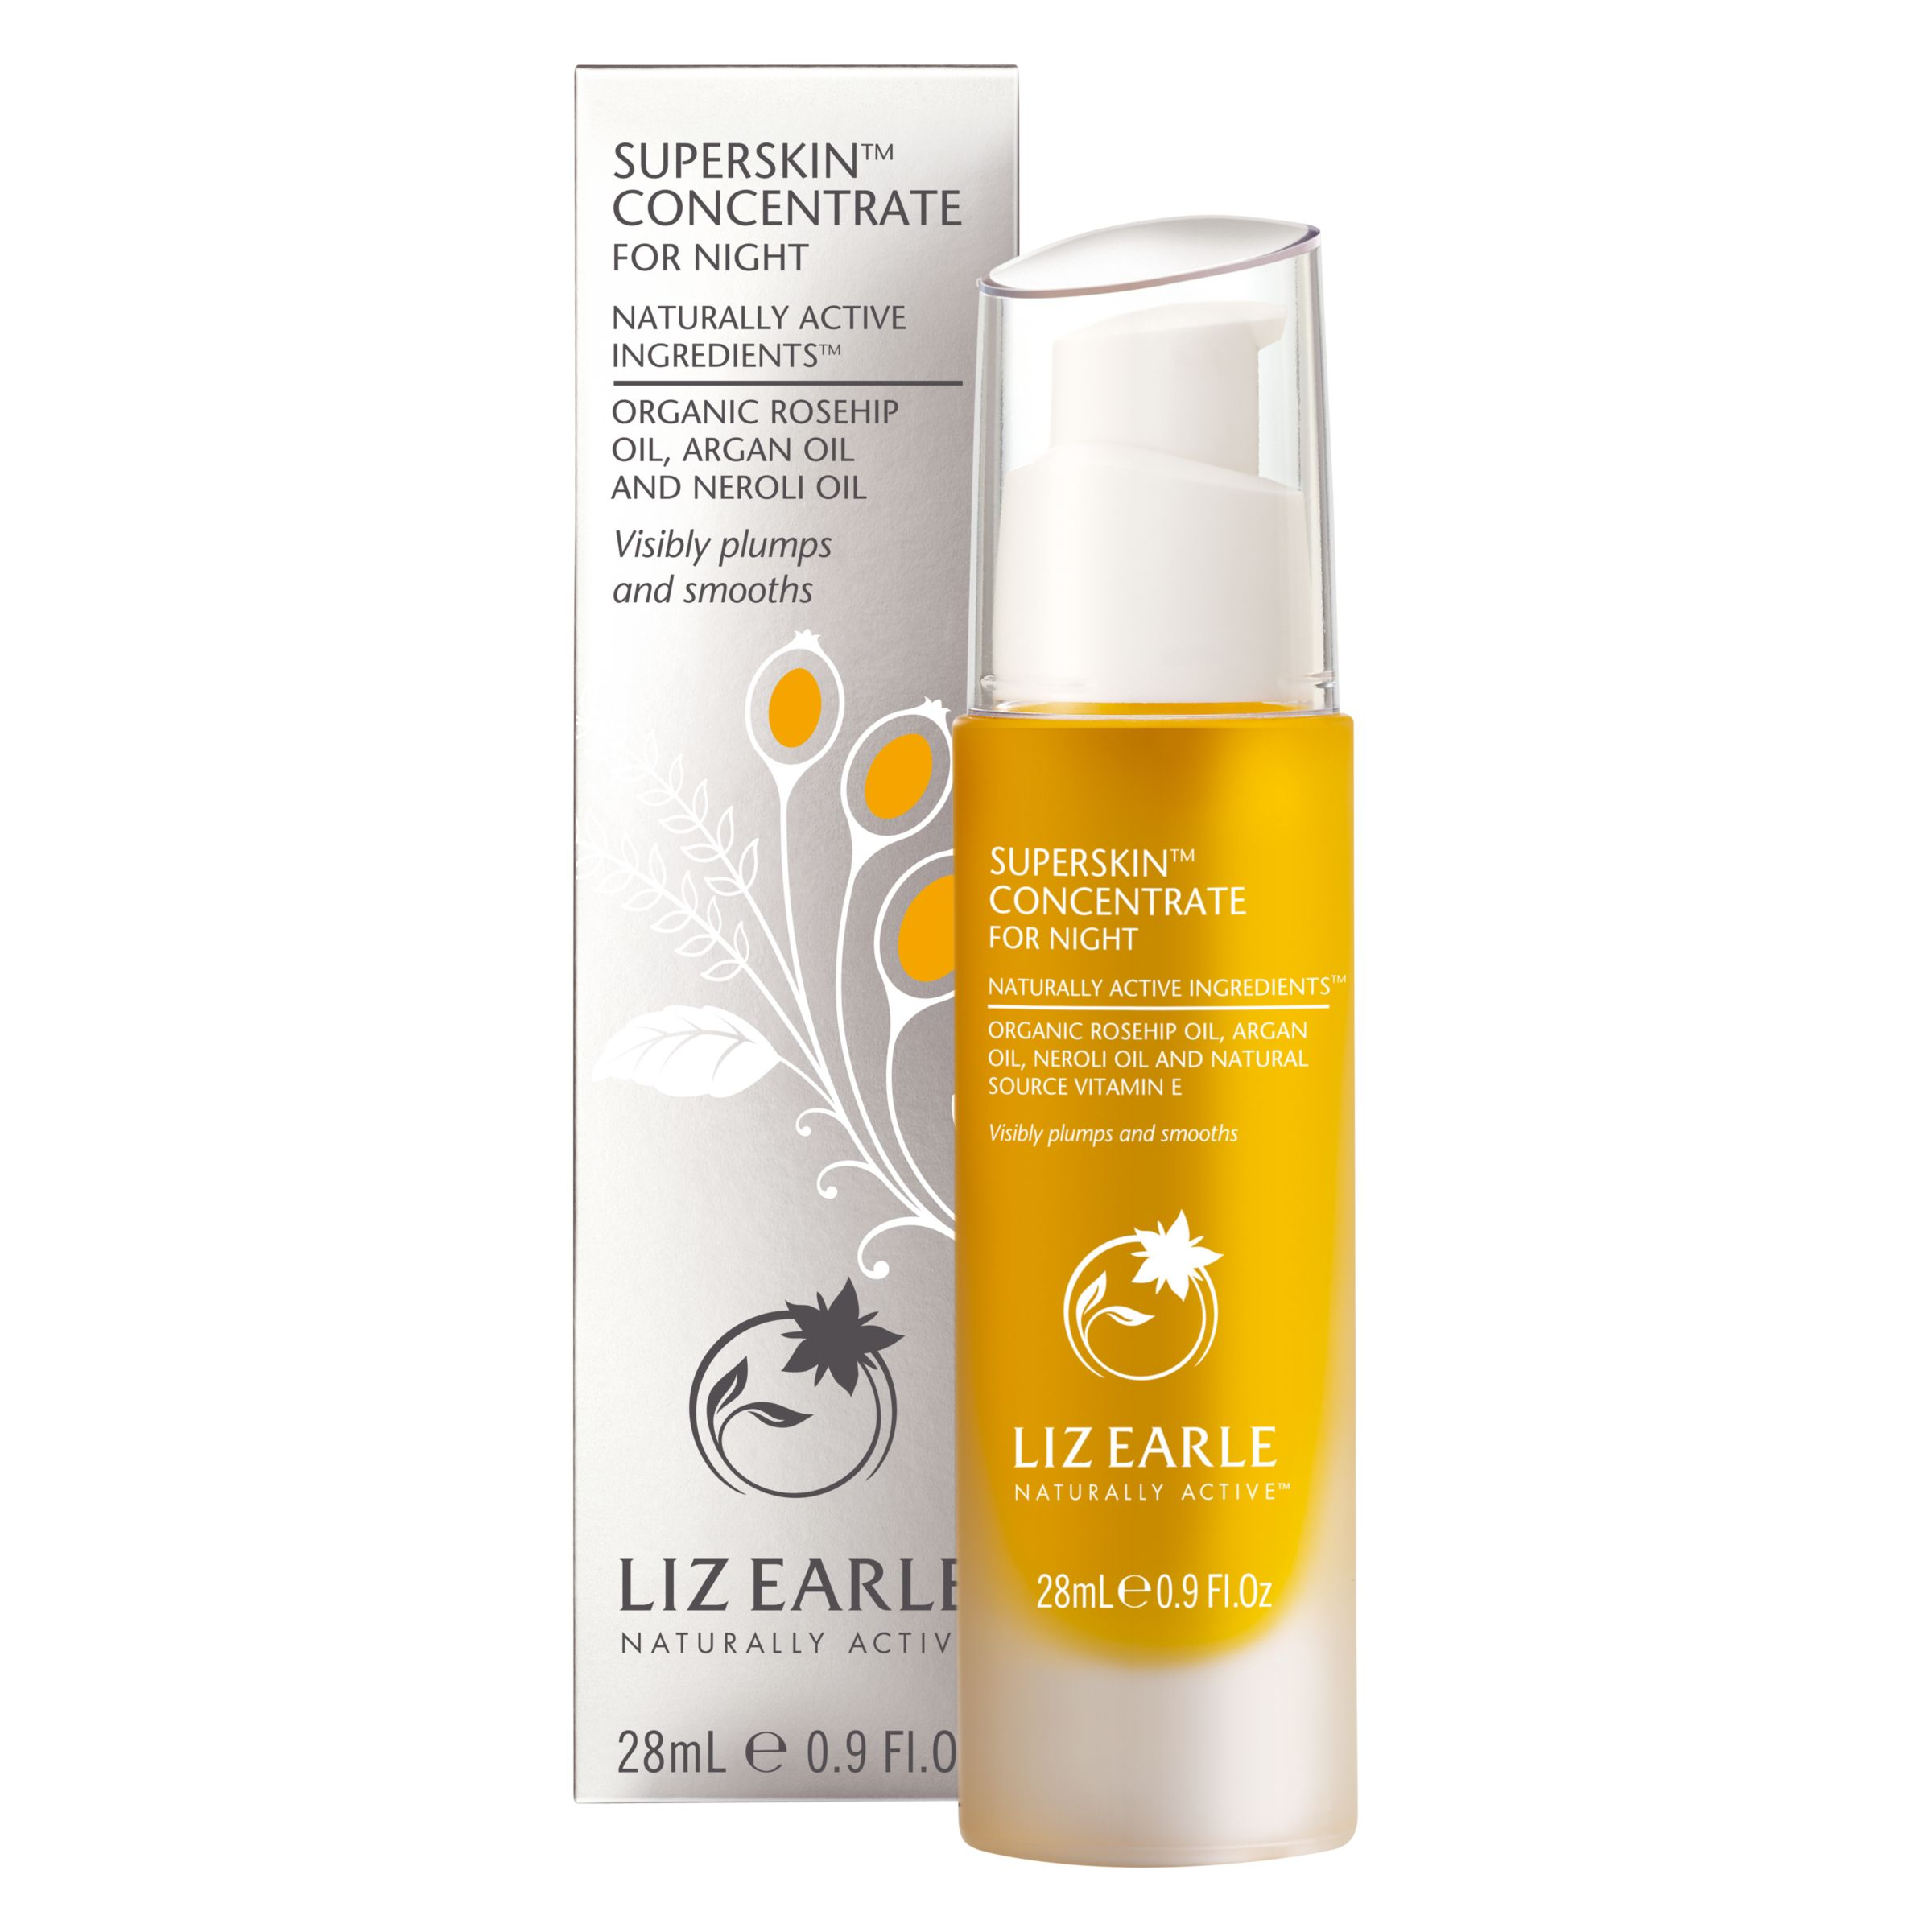 Liz Earle Superskin Concentr